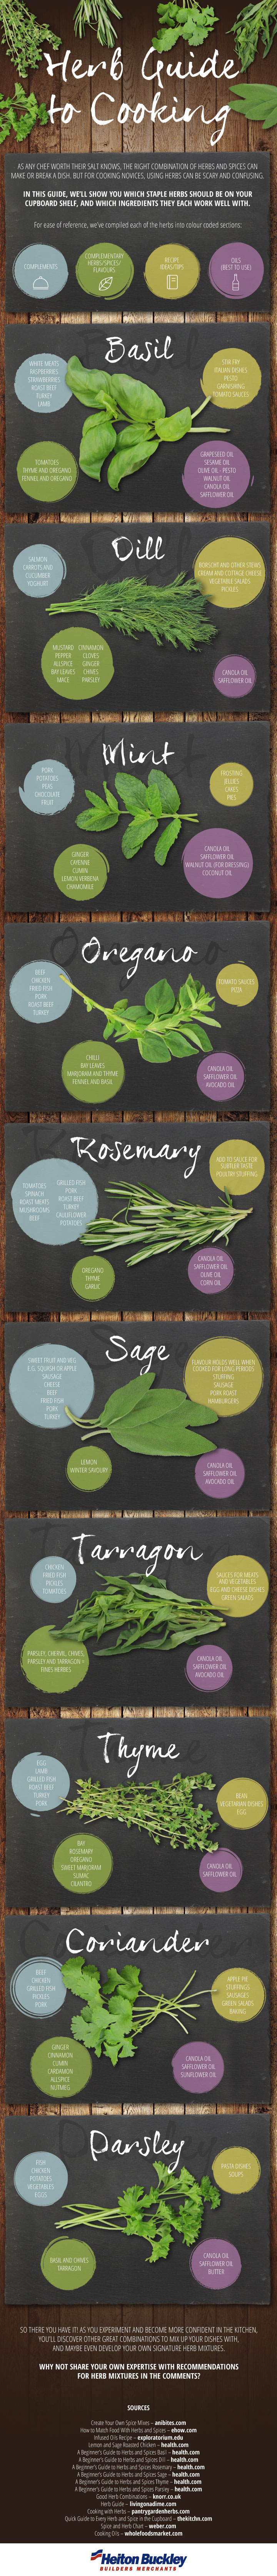 Herb-Guide-to-Cooking.jpg